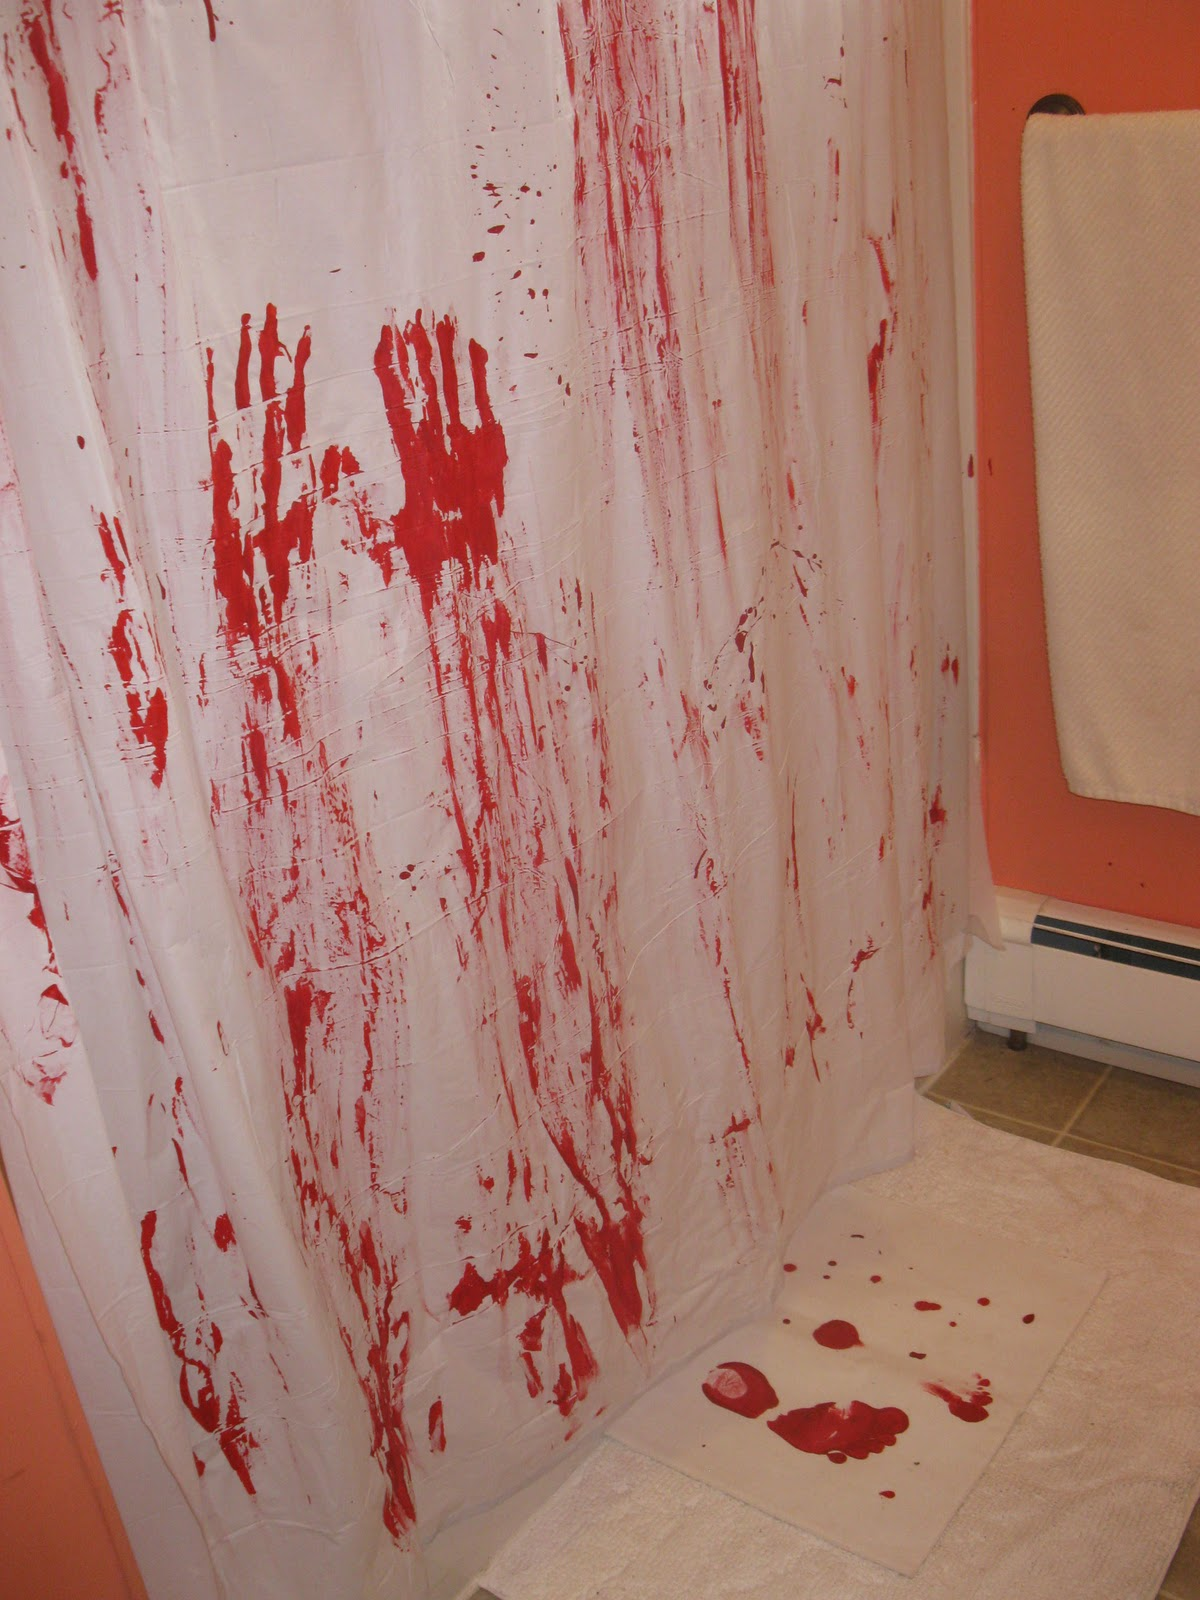 ... You Make it...: Day 25 of 31 Day Spooktacular- Bloody Shower Curtain